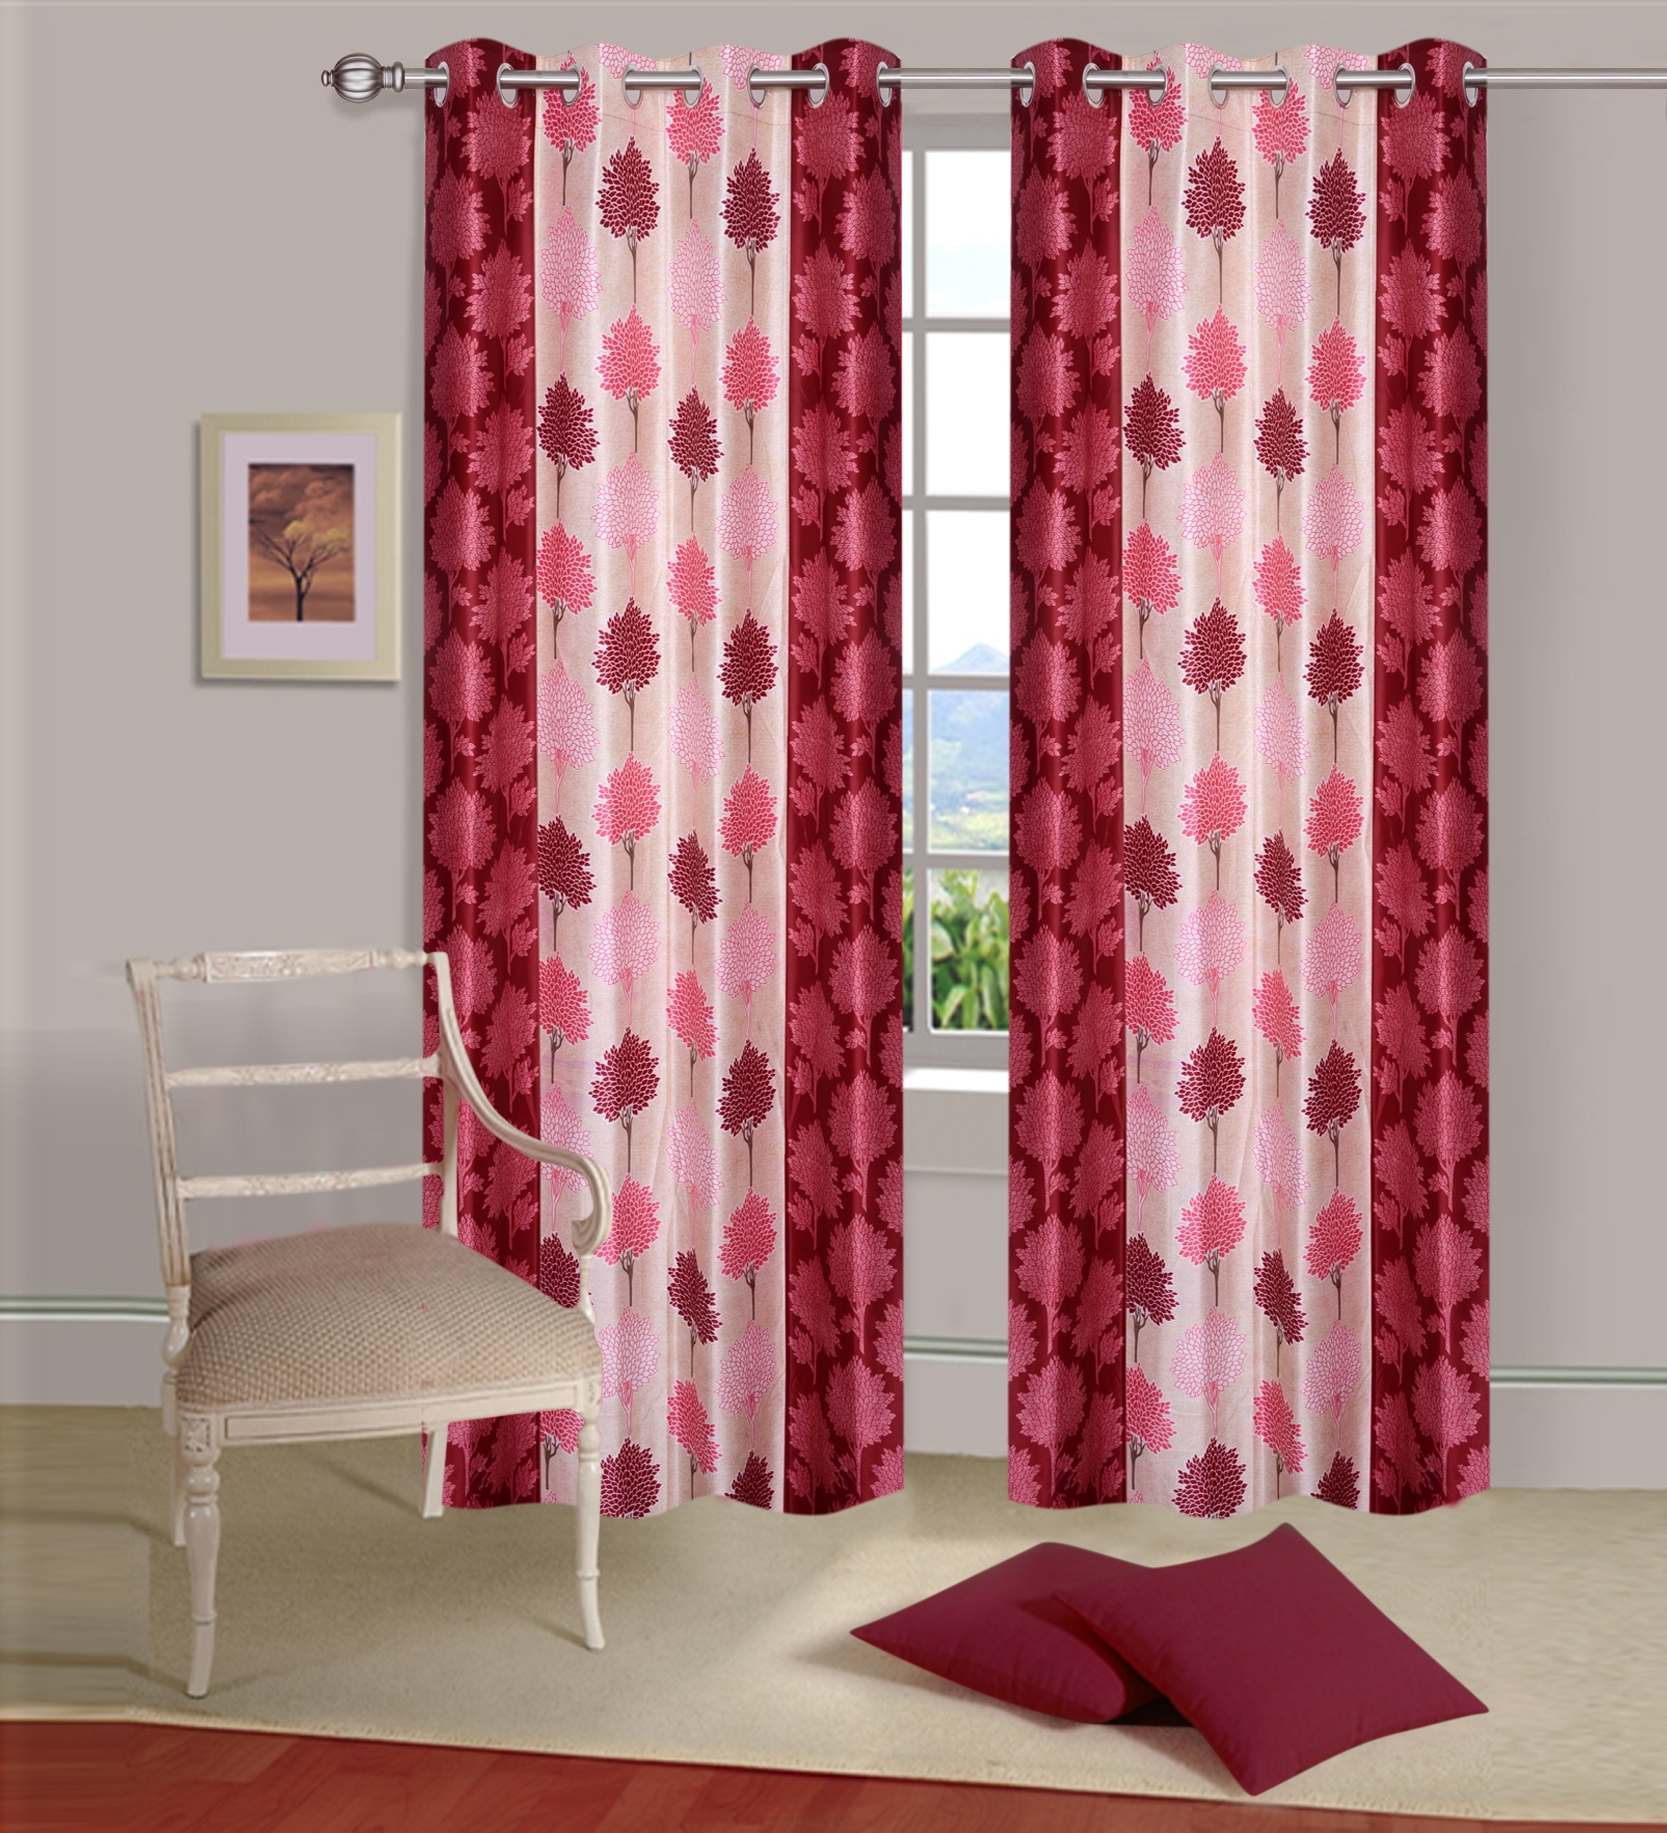 Homelogy Single Piece Supremo Leaf Maroon  Curtain